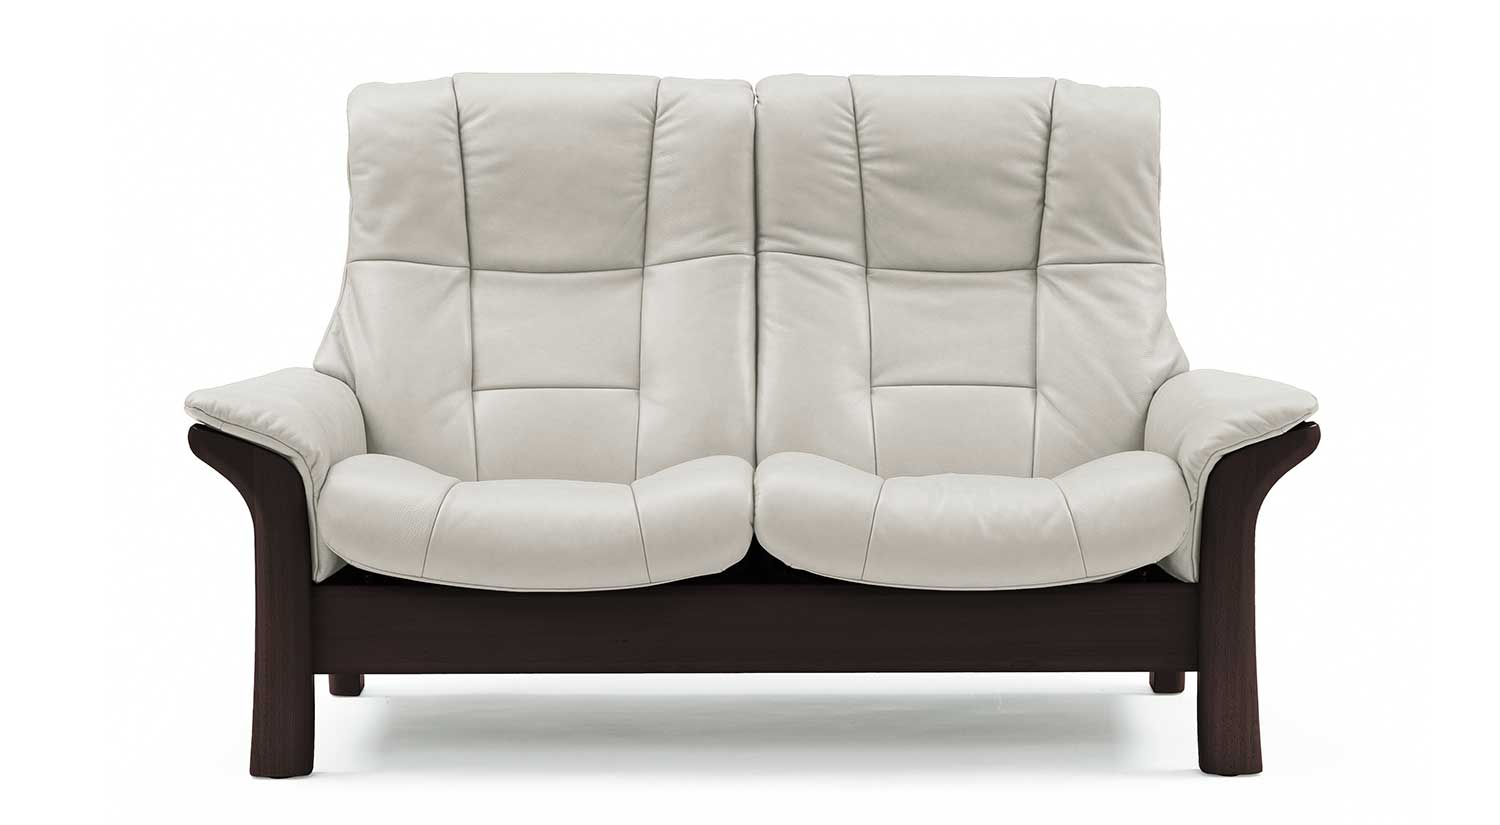 Stressless sofa preise circle furniture manhattan ekornes sofa stressless ekornes stressless Couches and loveseats